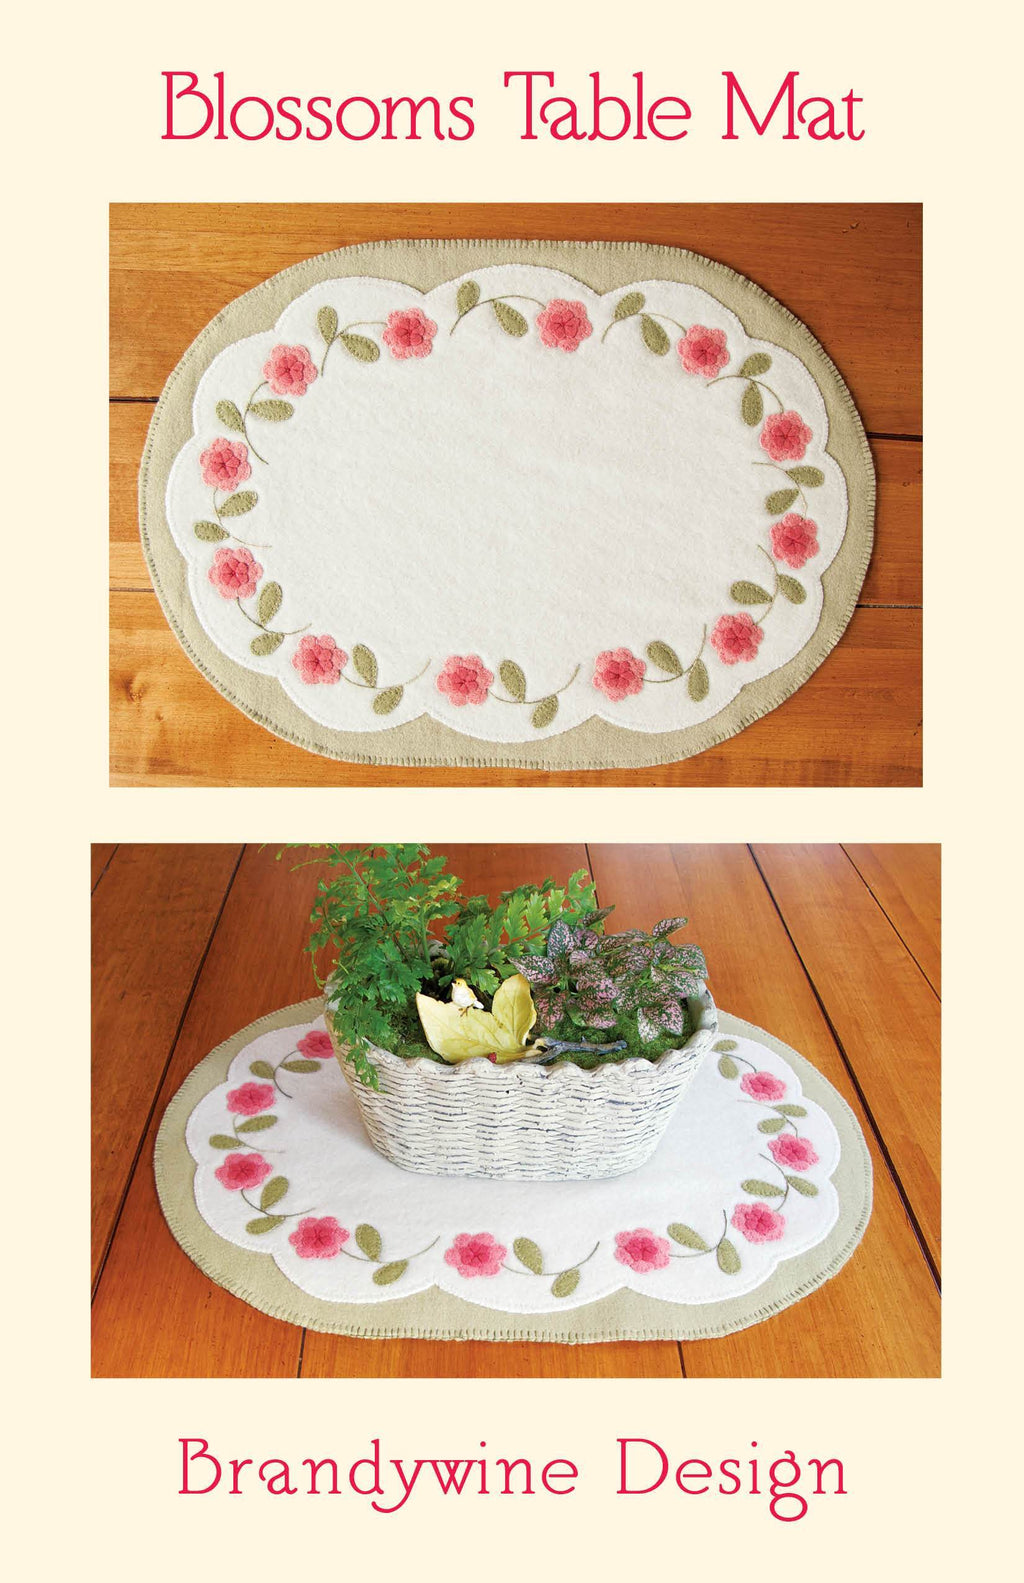 Blossoms Table Mat